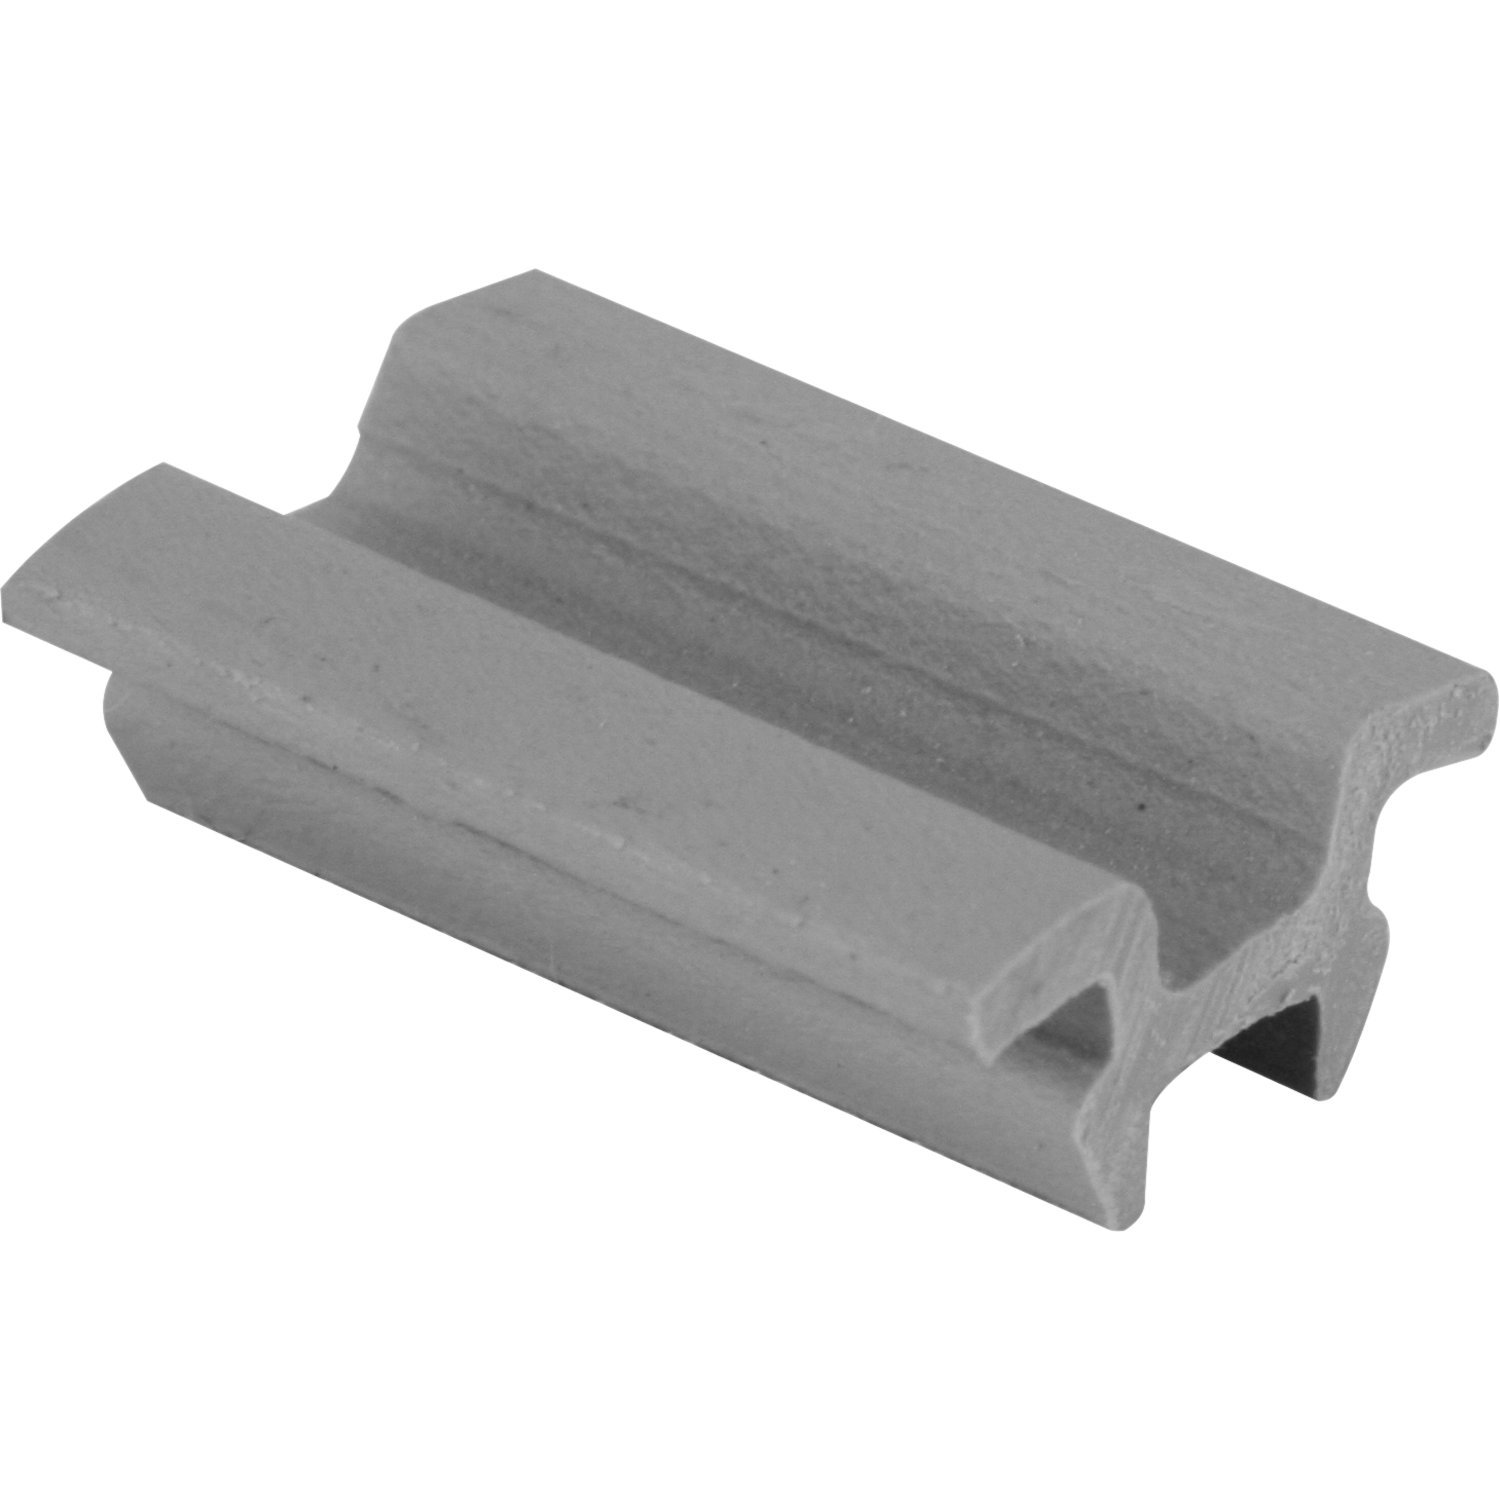 Prime-Line MP3028 Sliding Window Top Guide Pack of 4 4 Piece Prime-Line Products Nylon Gray